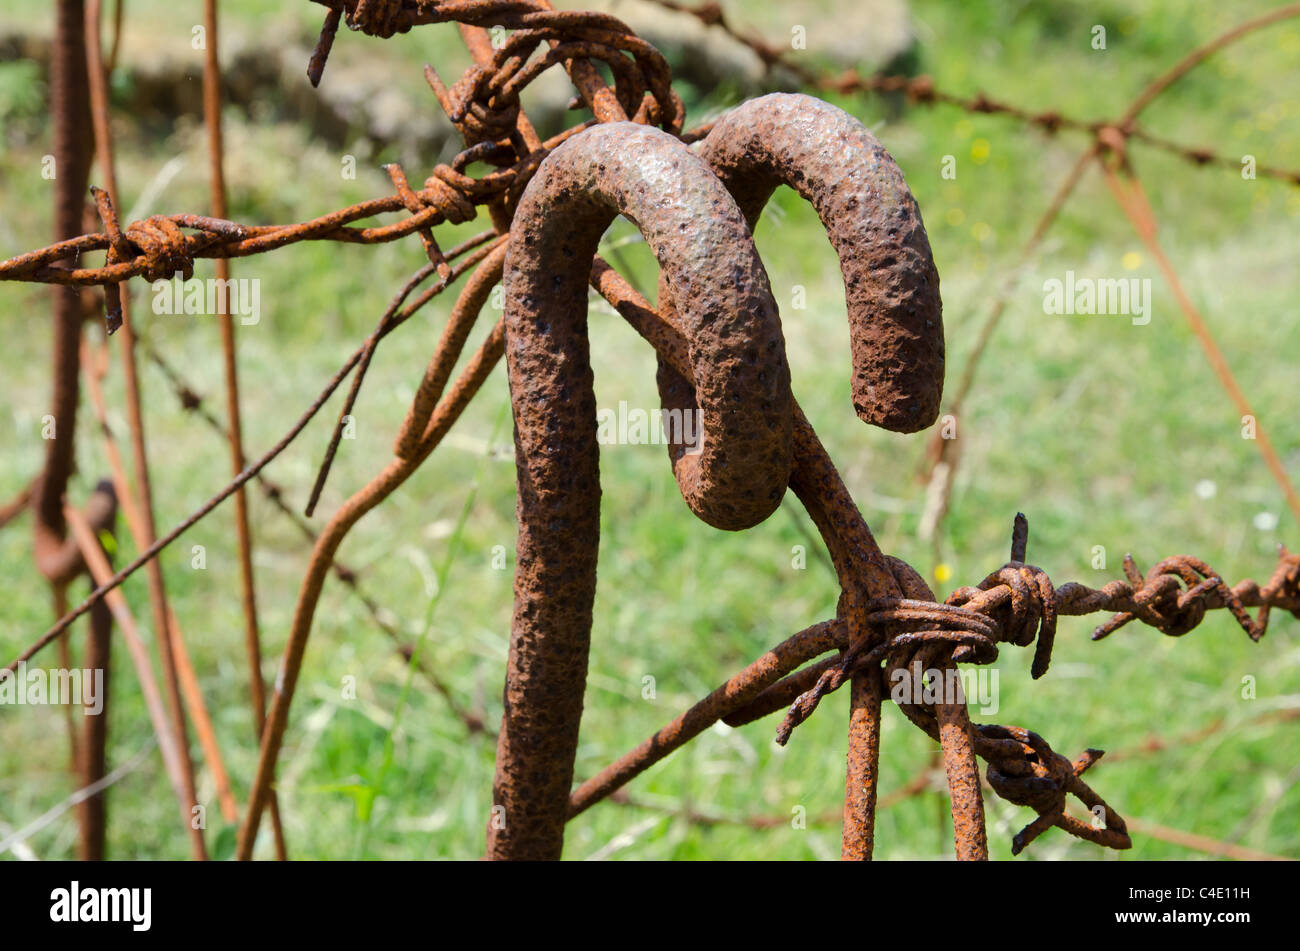 Original barbed wire entanglements from the First World War, Artois, France - Stock Image